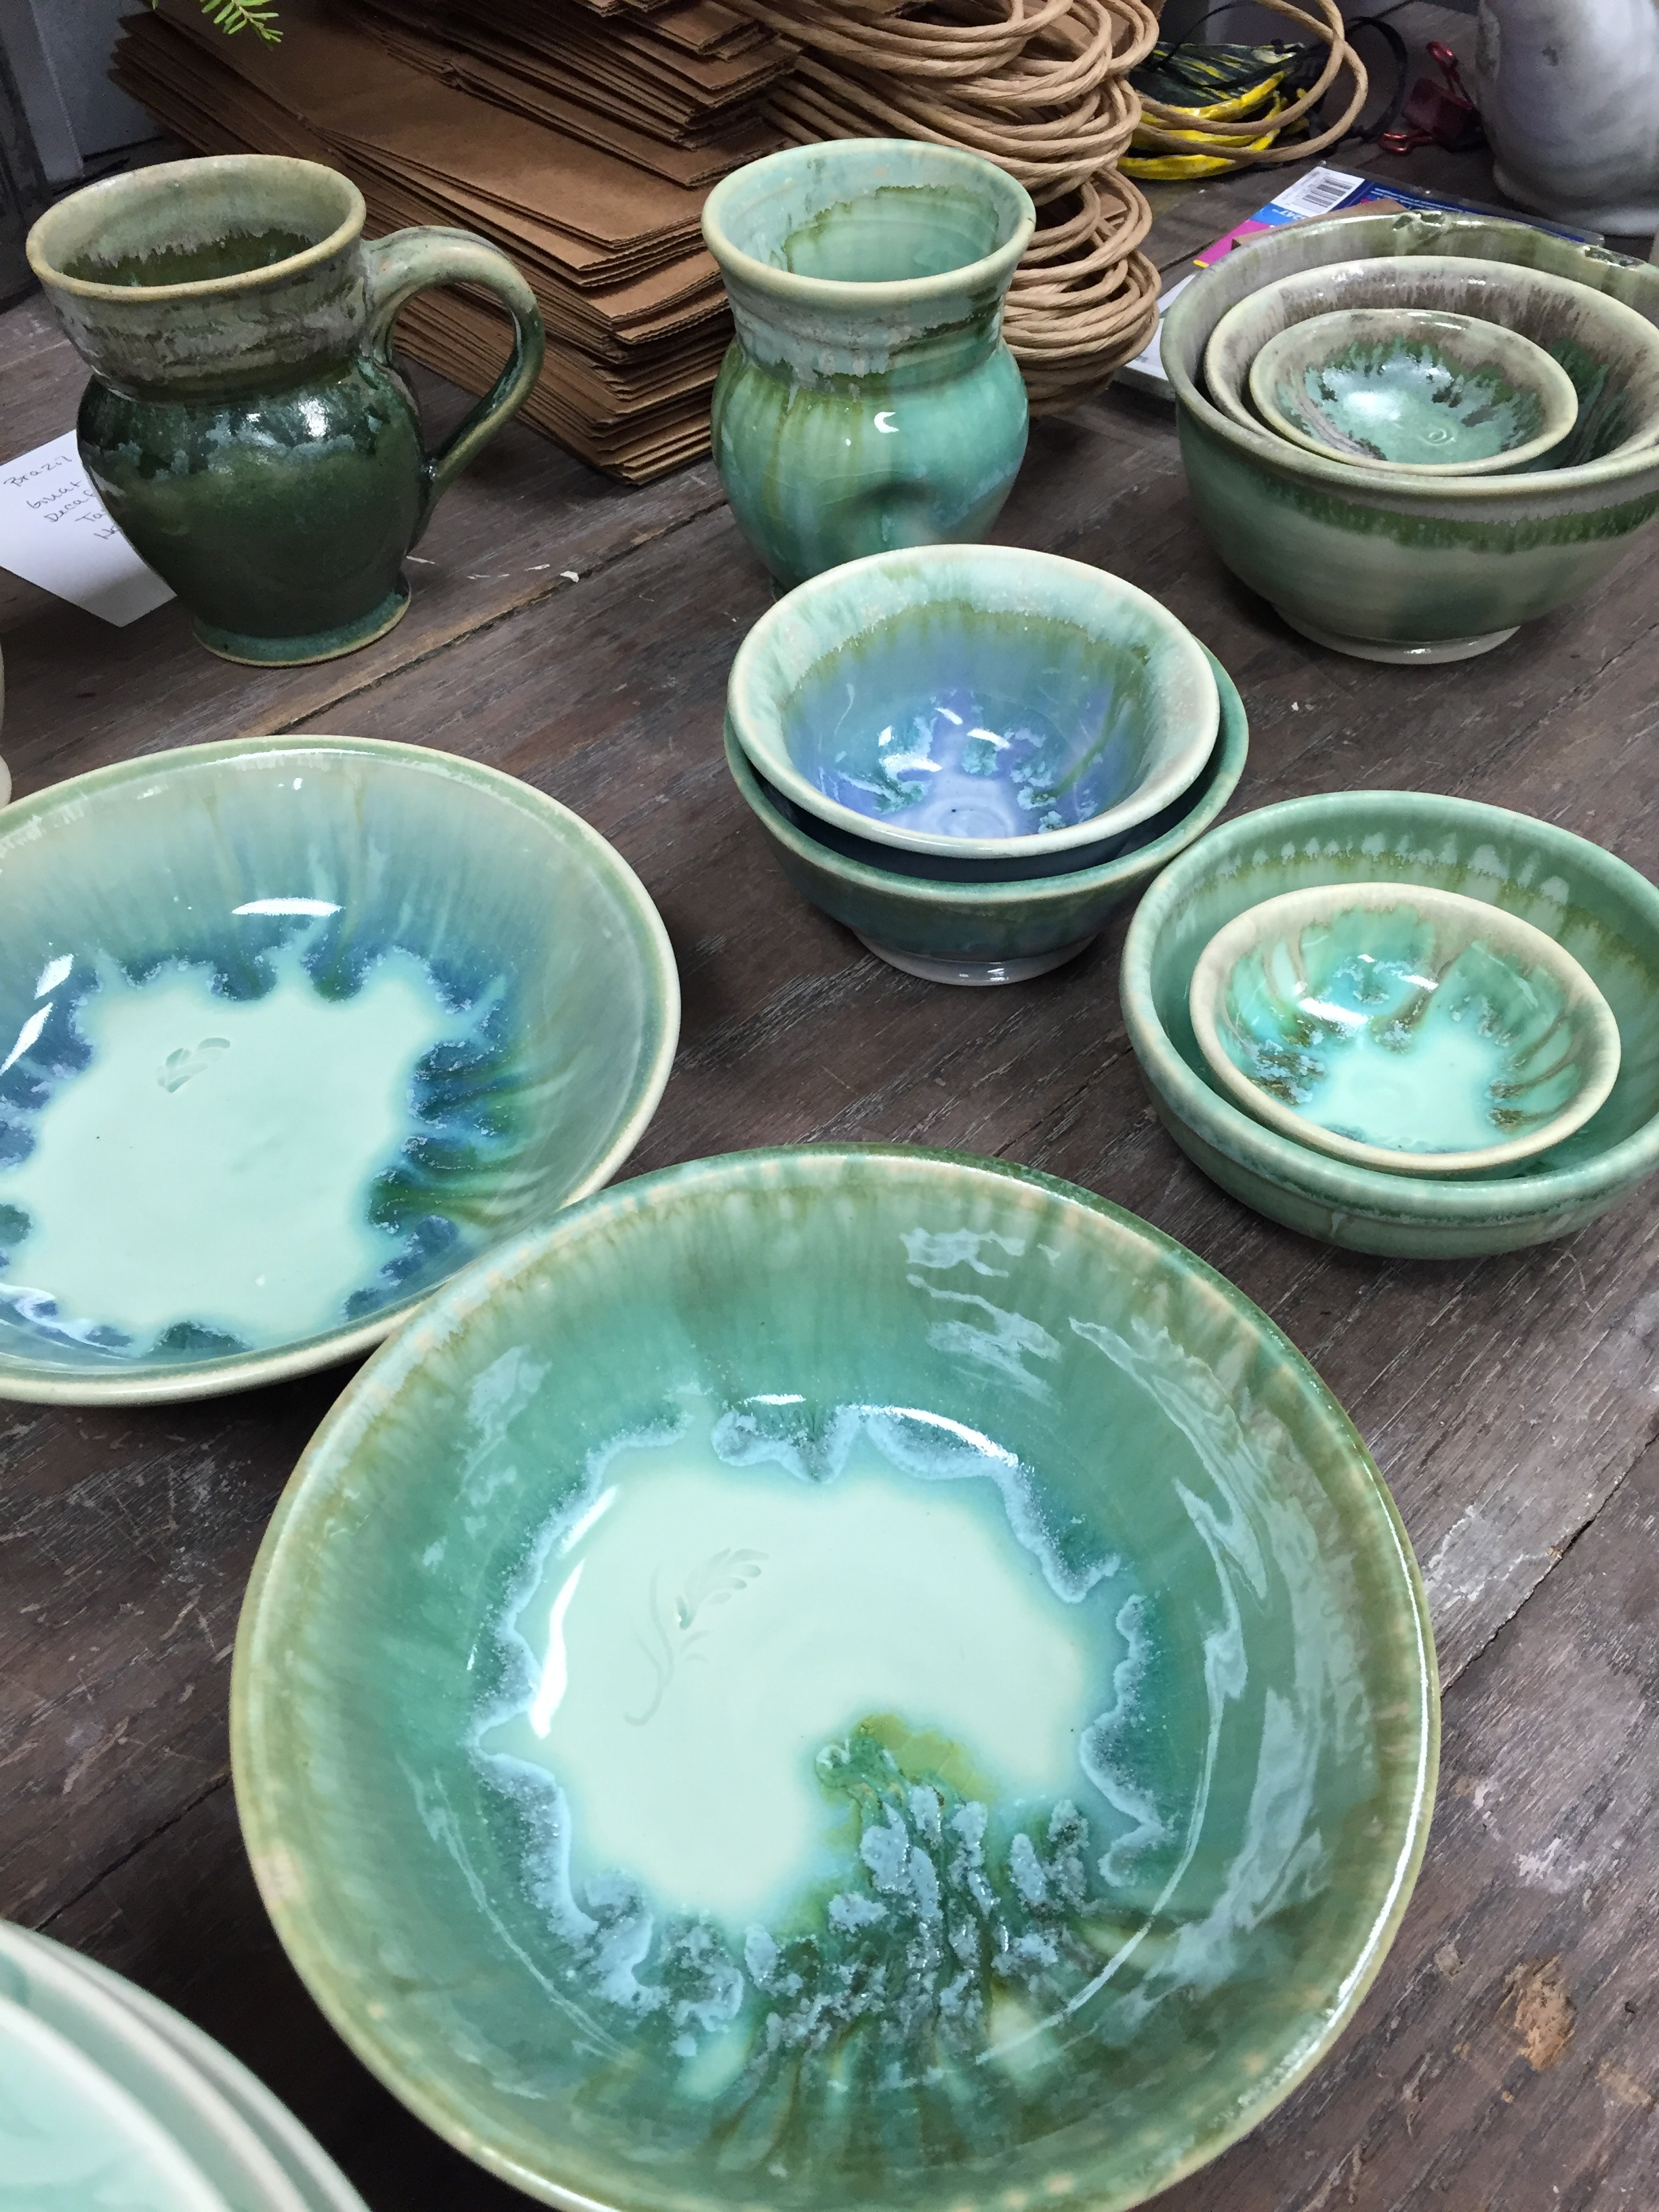 Microwave and dishwasher safe, hand-thrown dinnerware available at Stray Cat Studio.